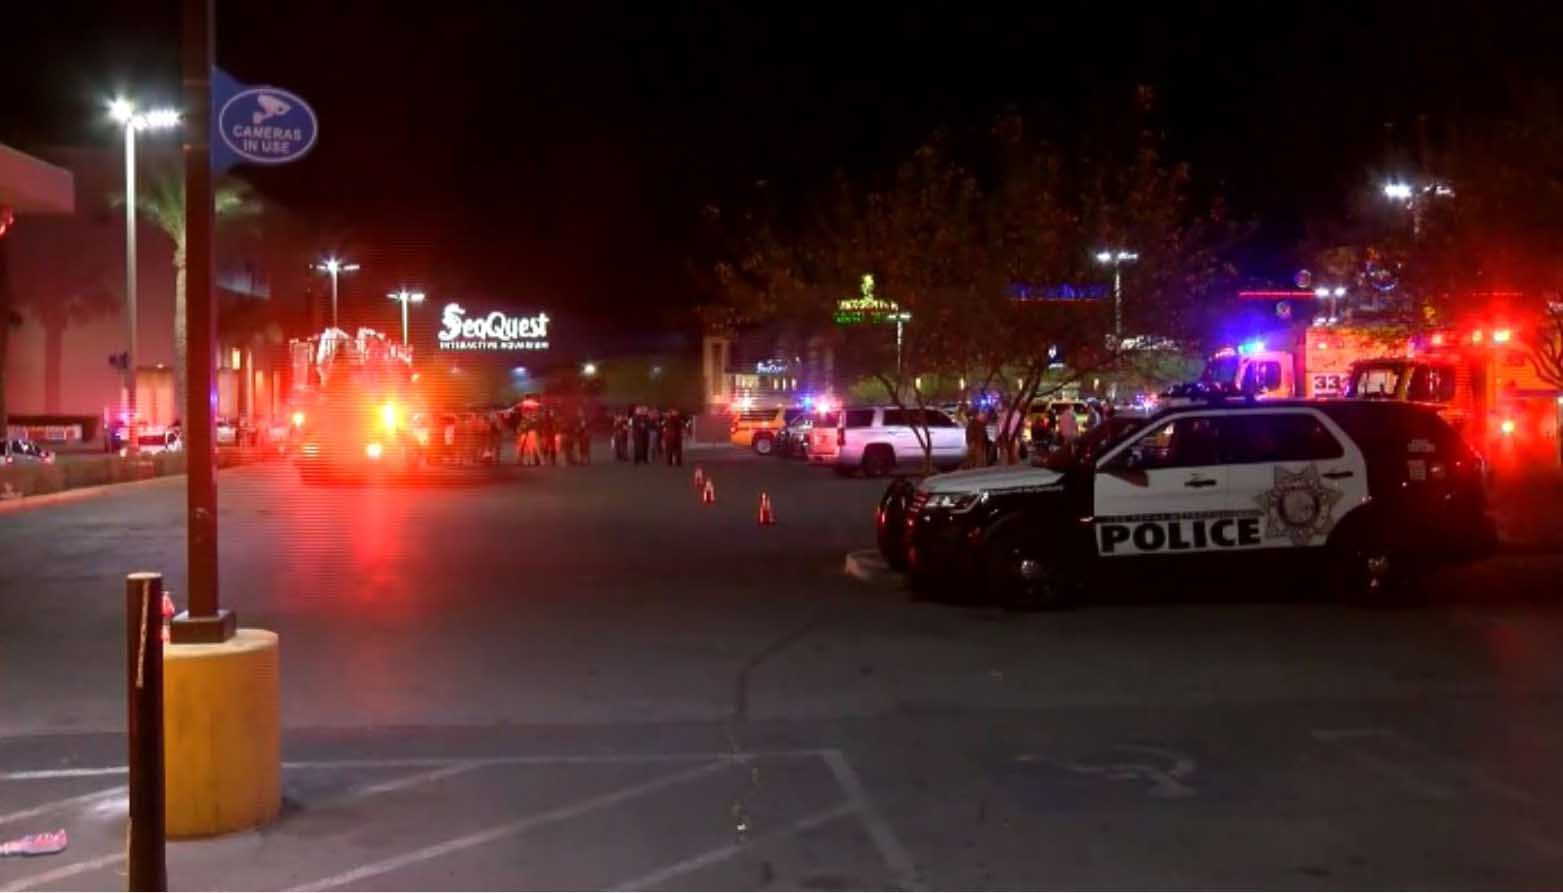 There was a heavy police presence at a Las Vegas mall Thursday night after reports of a masked man with a gun walking around. (Source: KSNV/CNN)